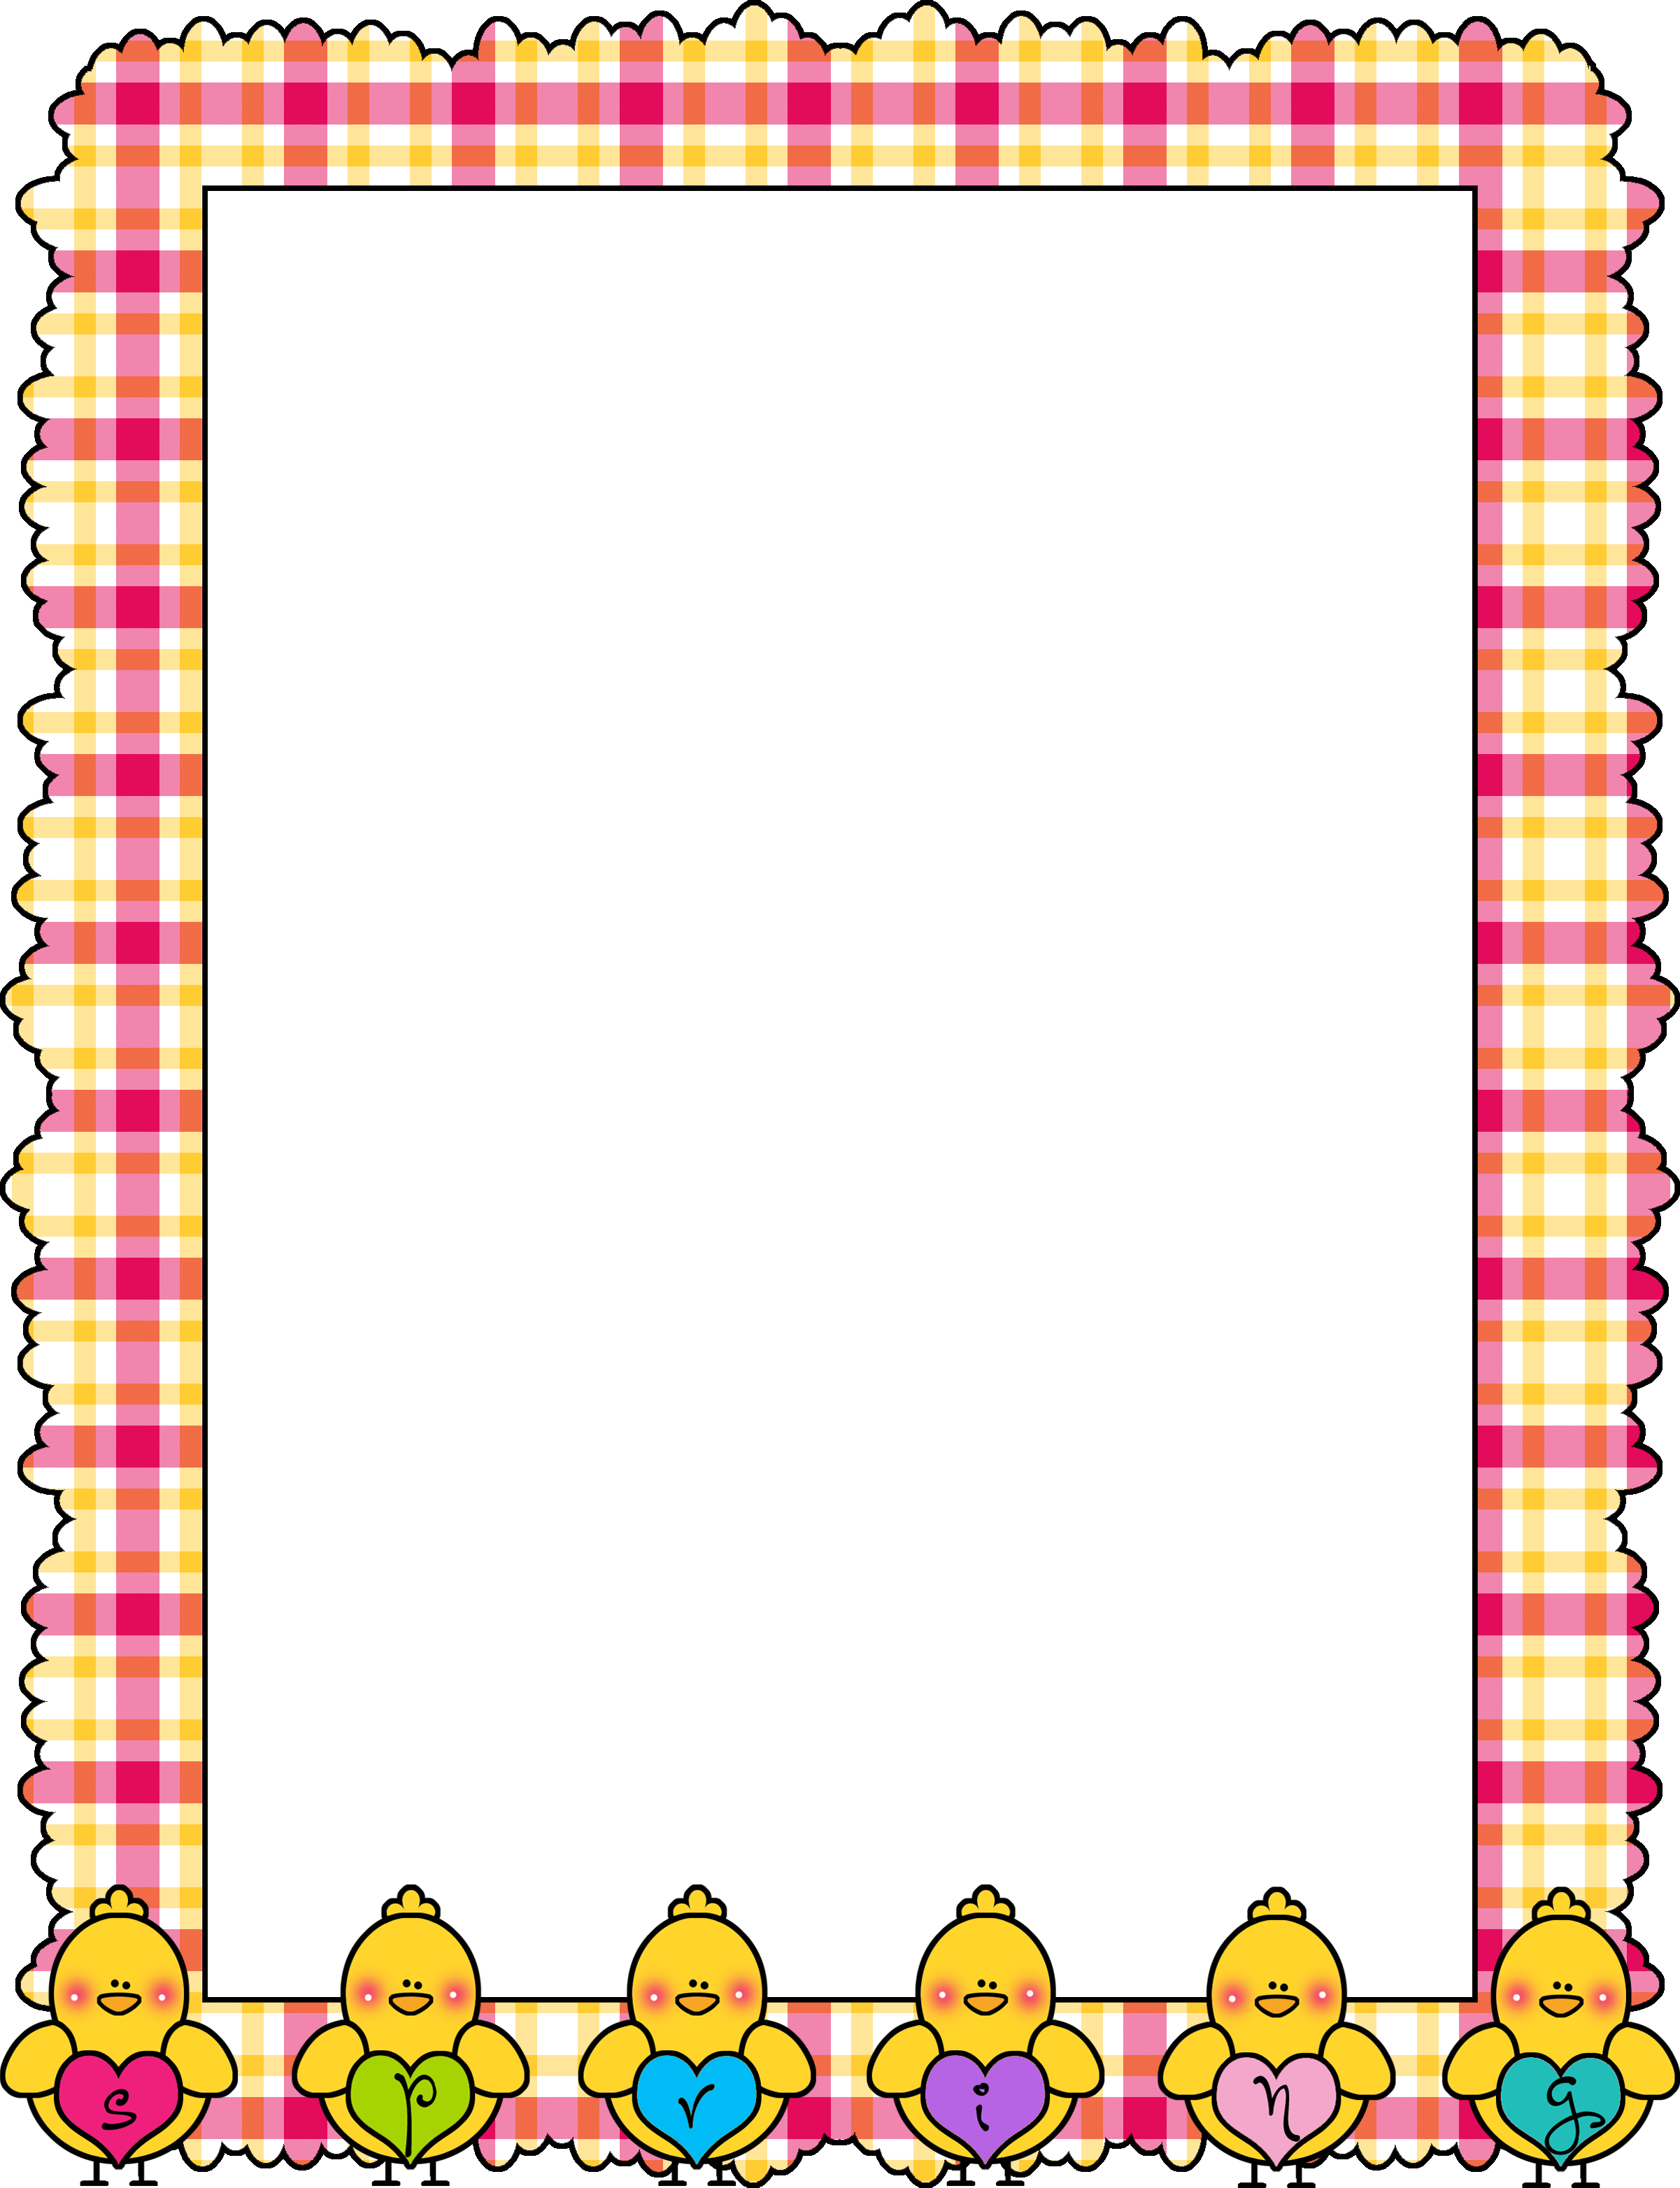 School clip frame design. Marcos borders